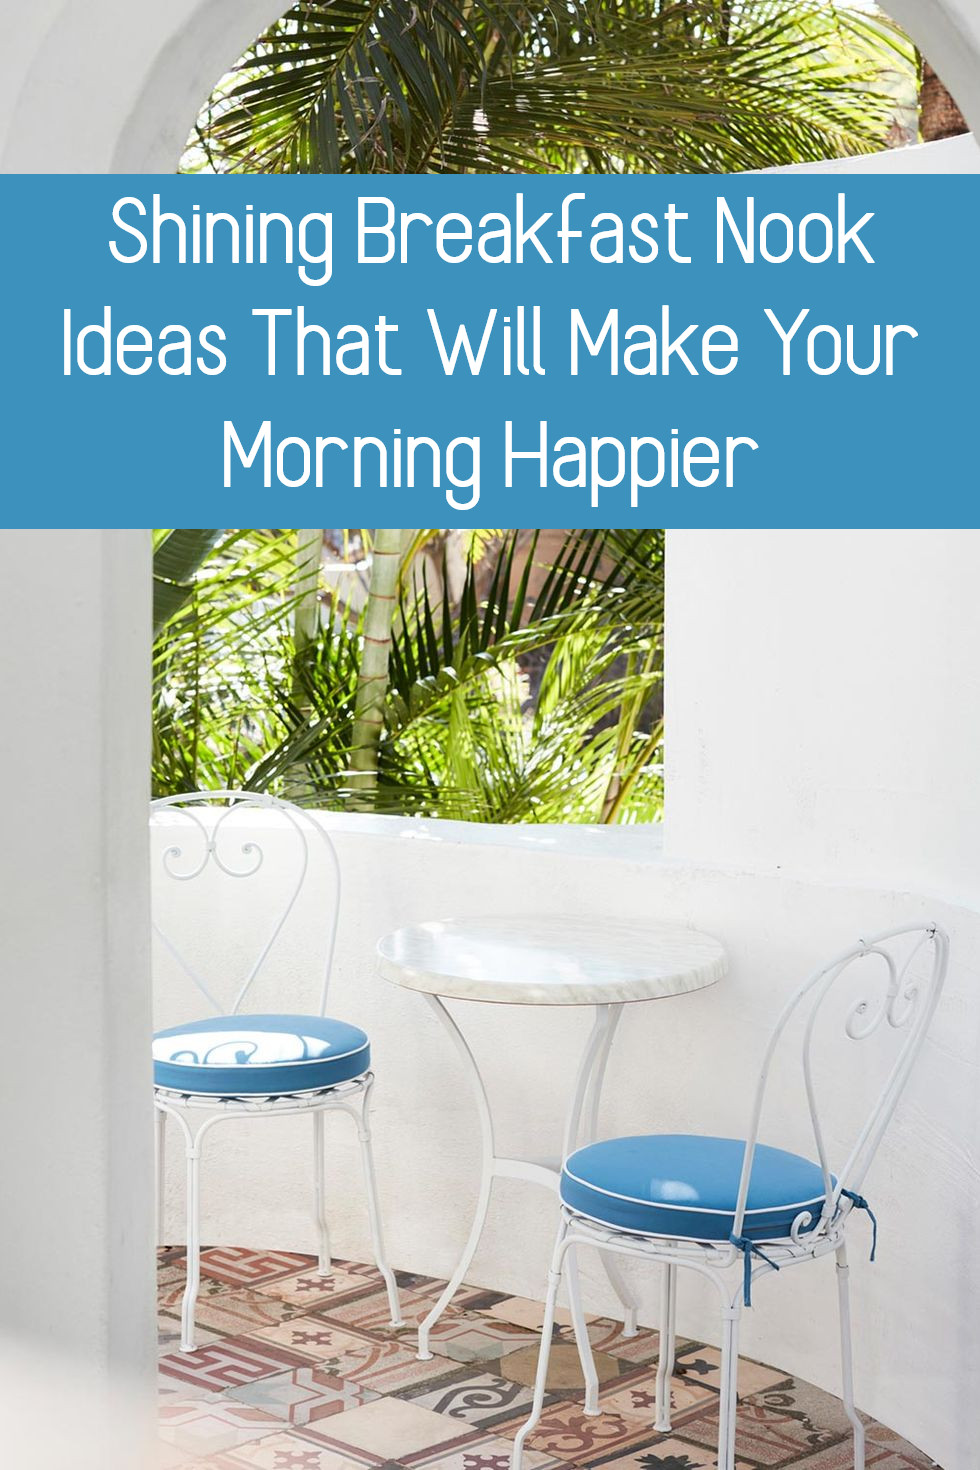 Shining Breakfast Nook Ideas That Will Make Your Morning Happier